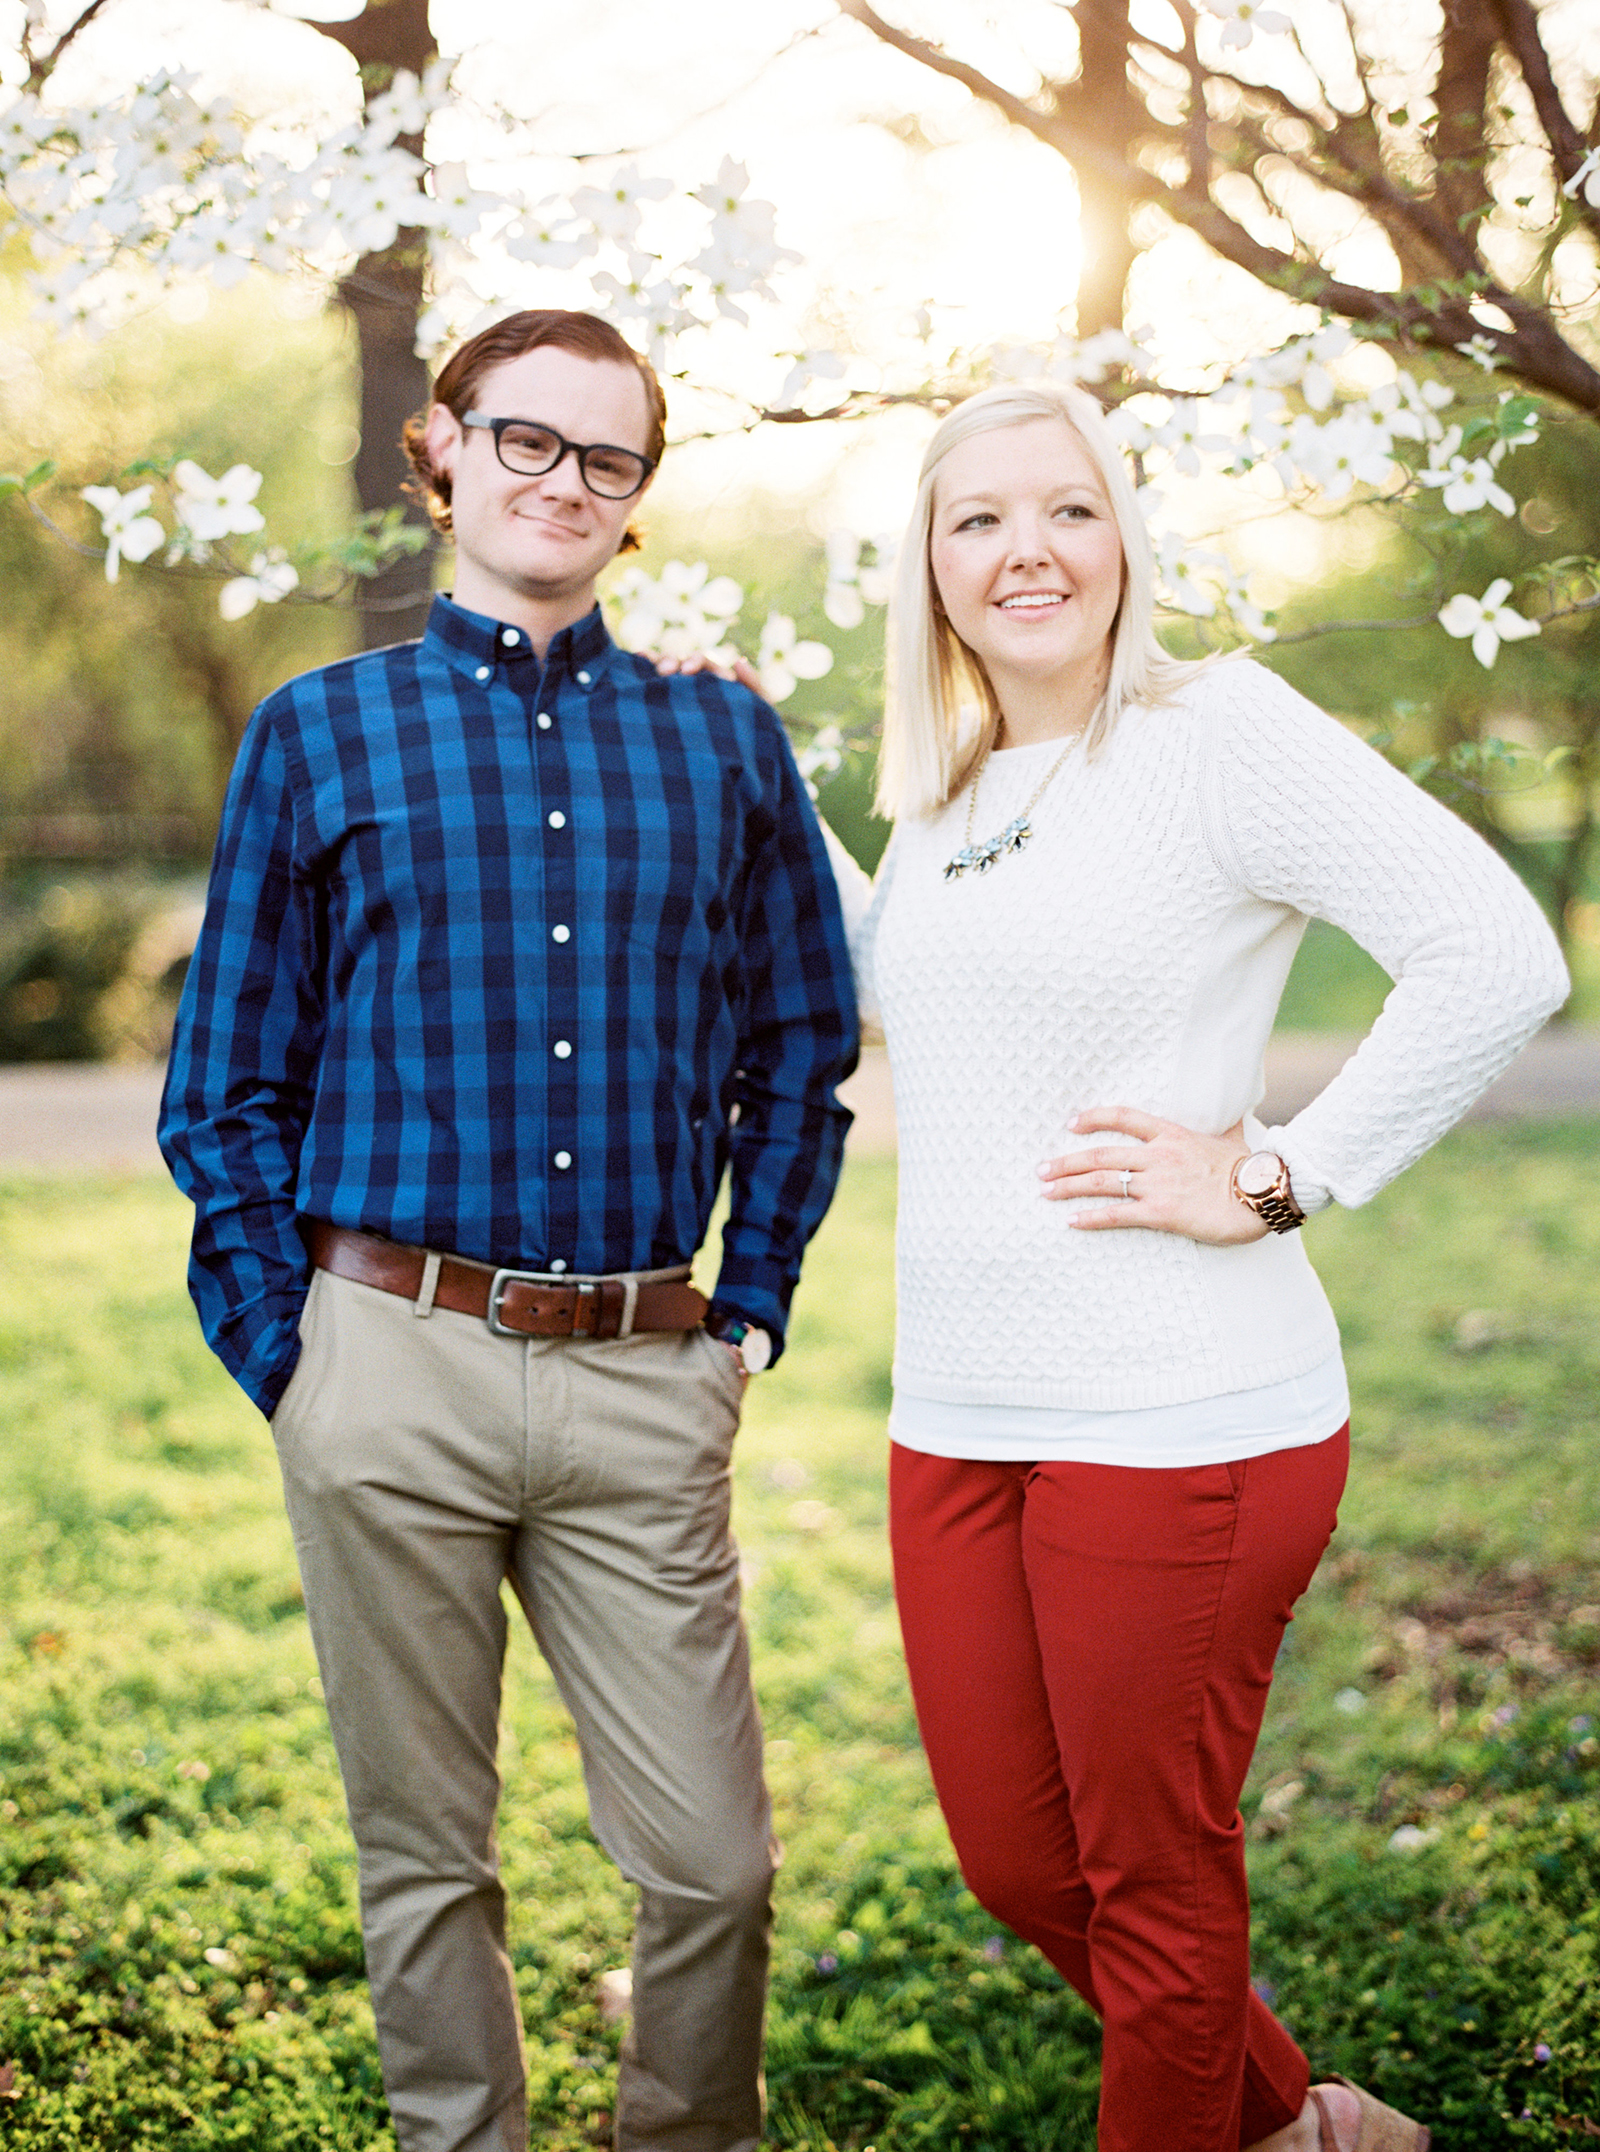 Lafayette Park Engagement Session by Oldani Photography St. Louis Wedding Photographers 52.jpg